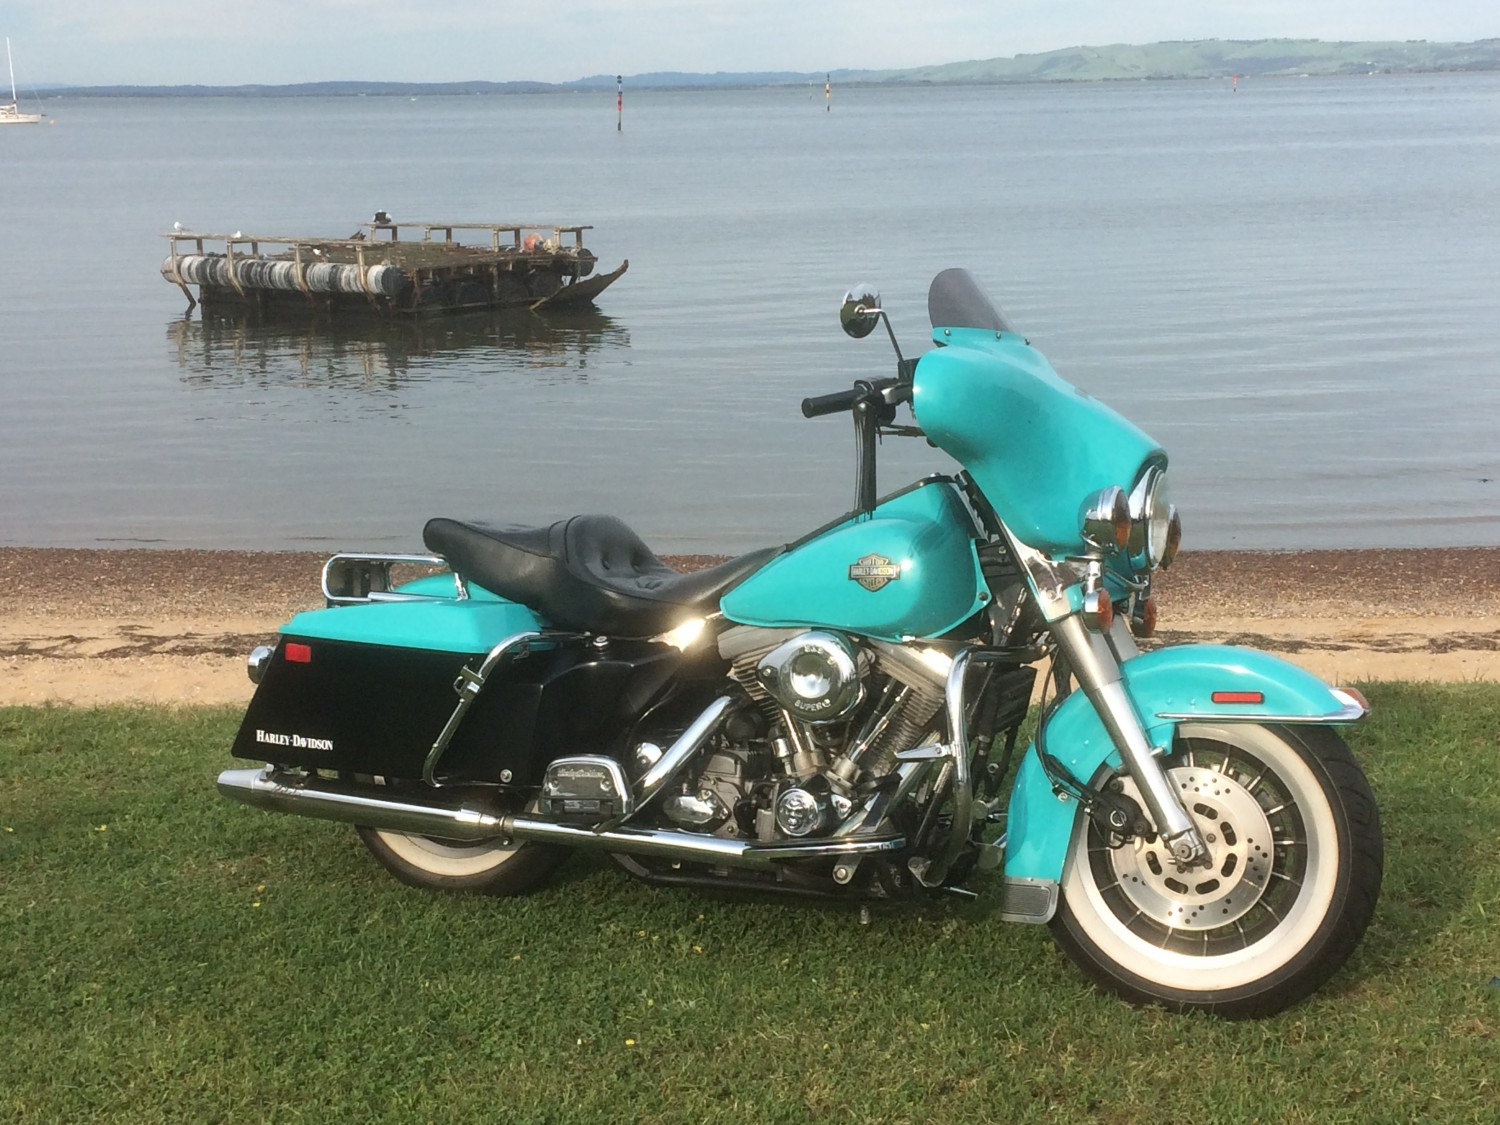 1986 Harley-Davidson 1340cc FLHTC ELECTRA GLIDE CLASSIC